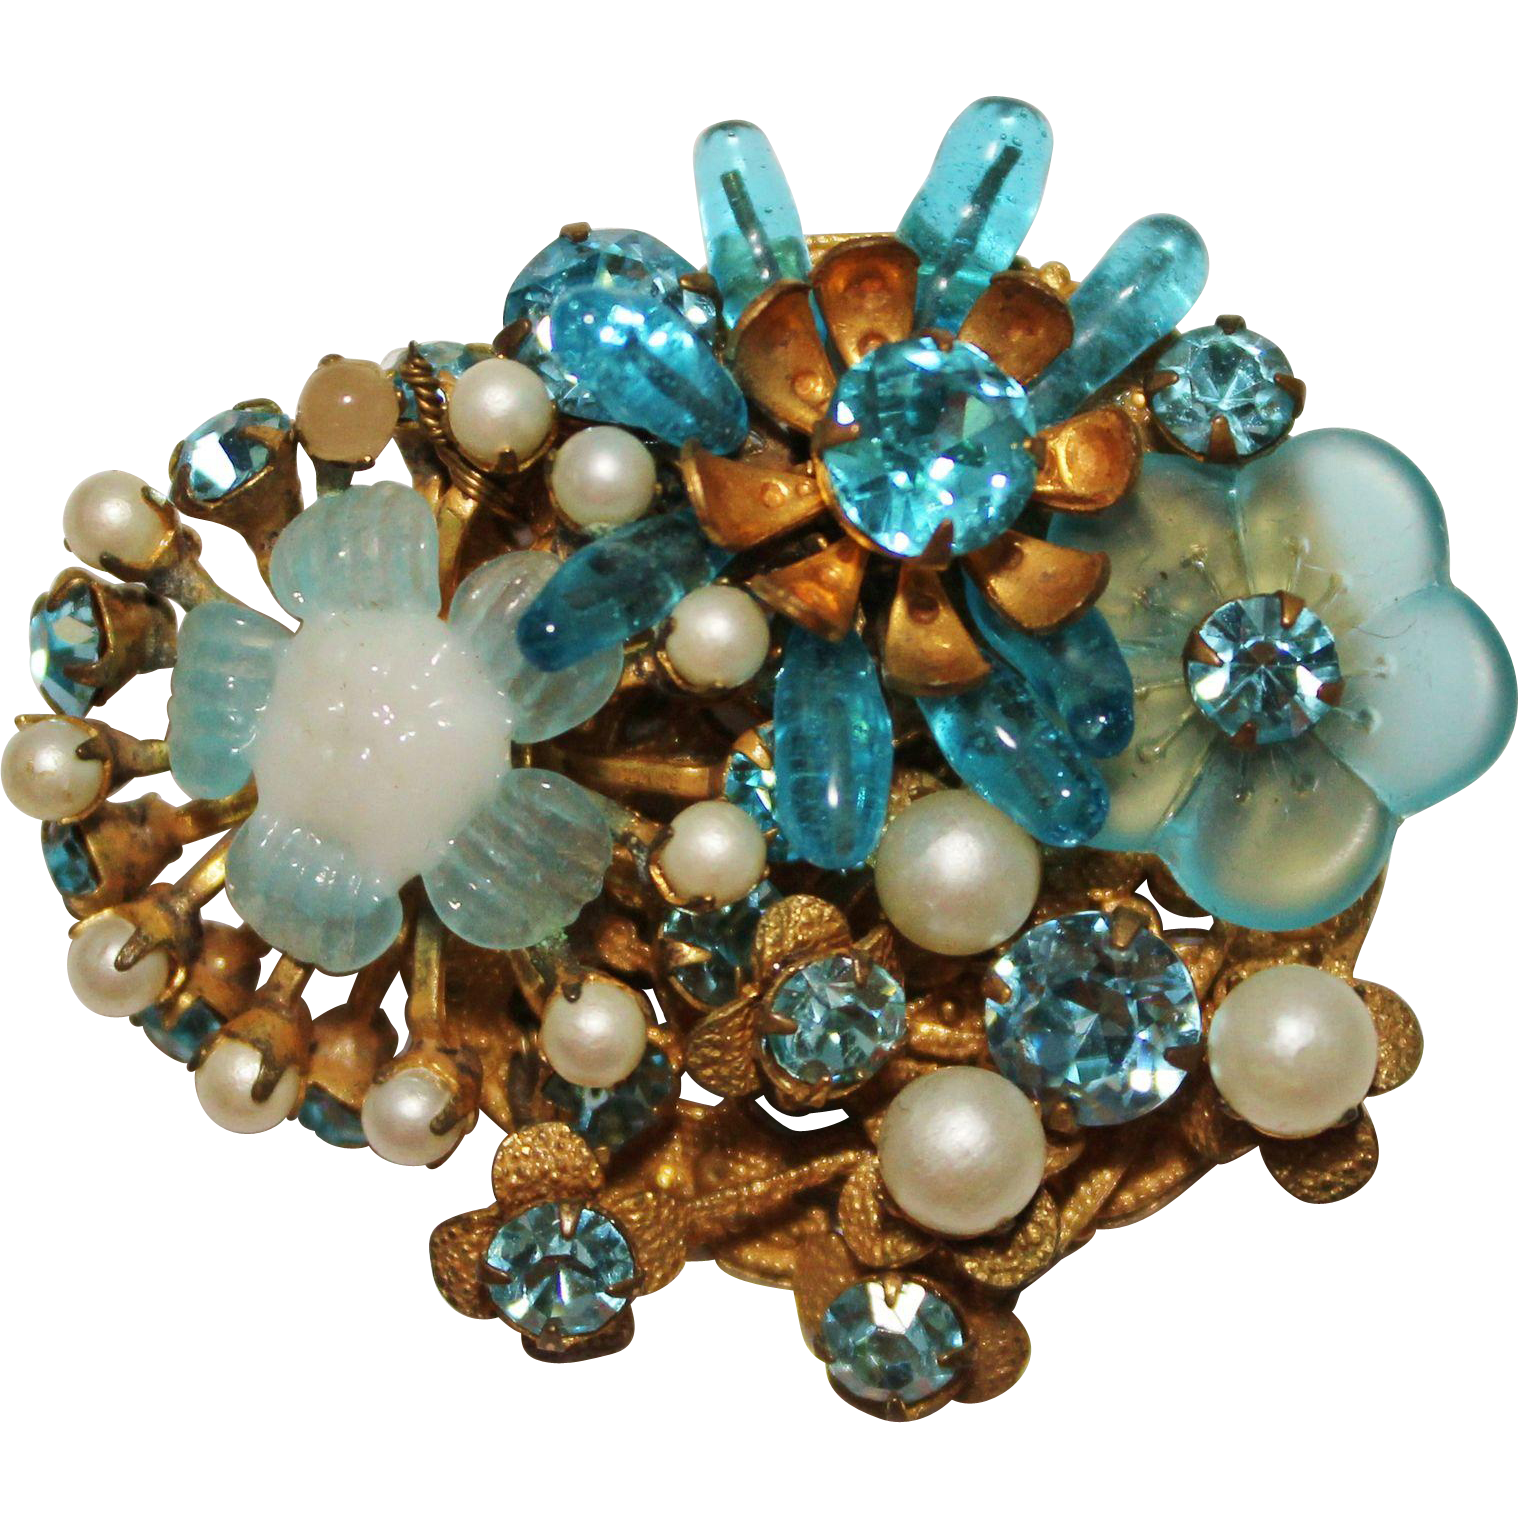 glass montana pieces jewelry bracelet vintage rhinestone brooch blue art deco